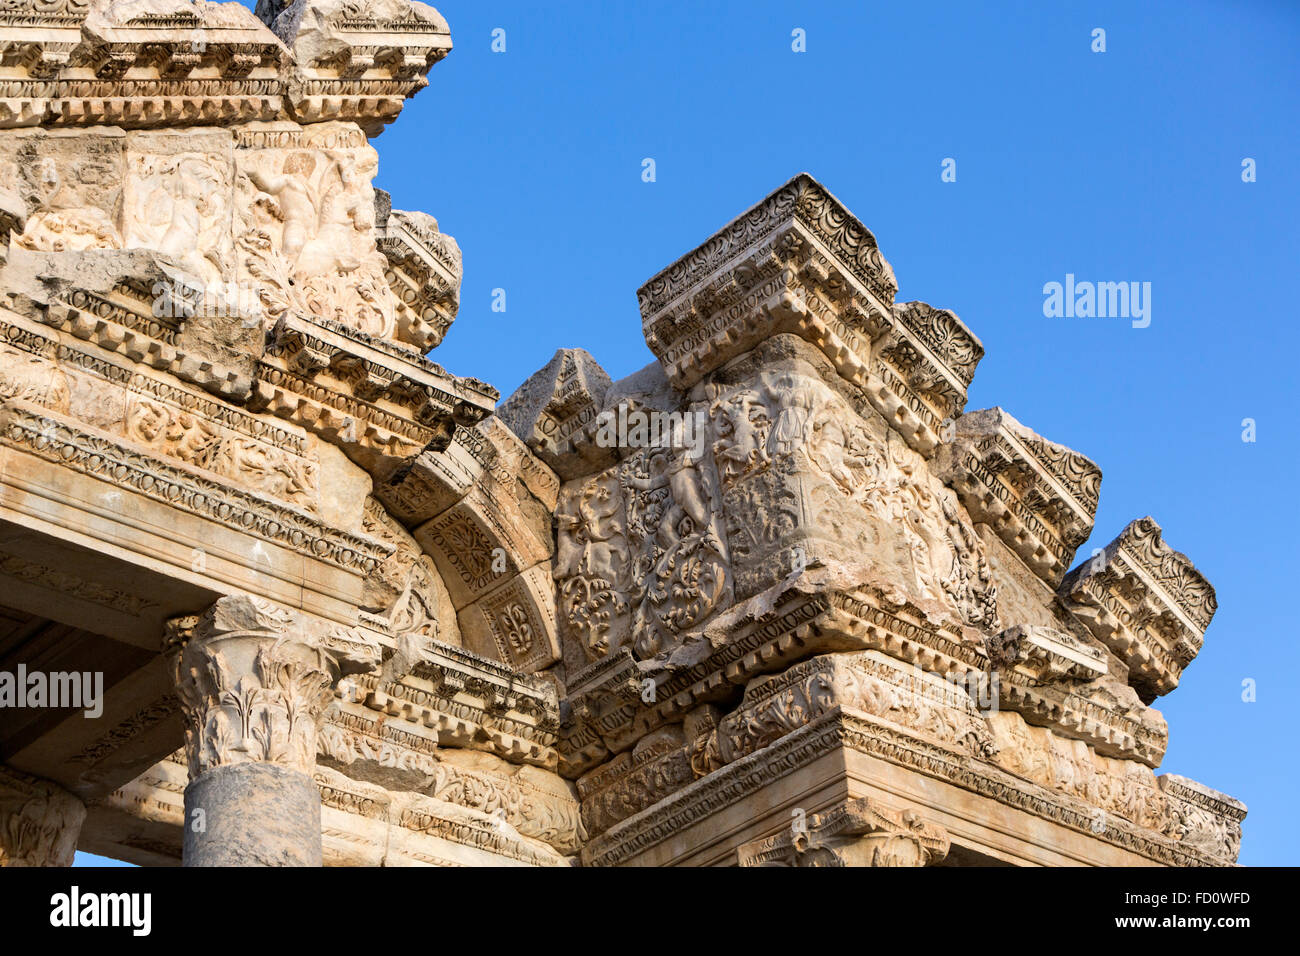 Western pediment of the monumental gateway or tetrapylon at sunset. Aphrodisias, Turkey - Stock Image